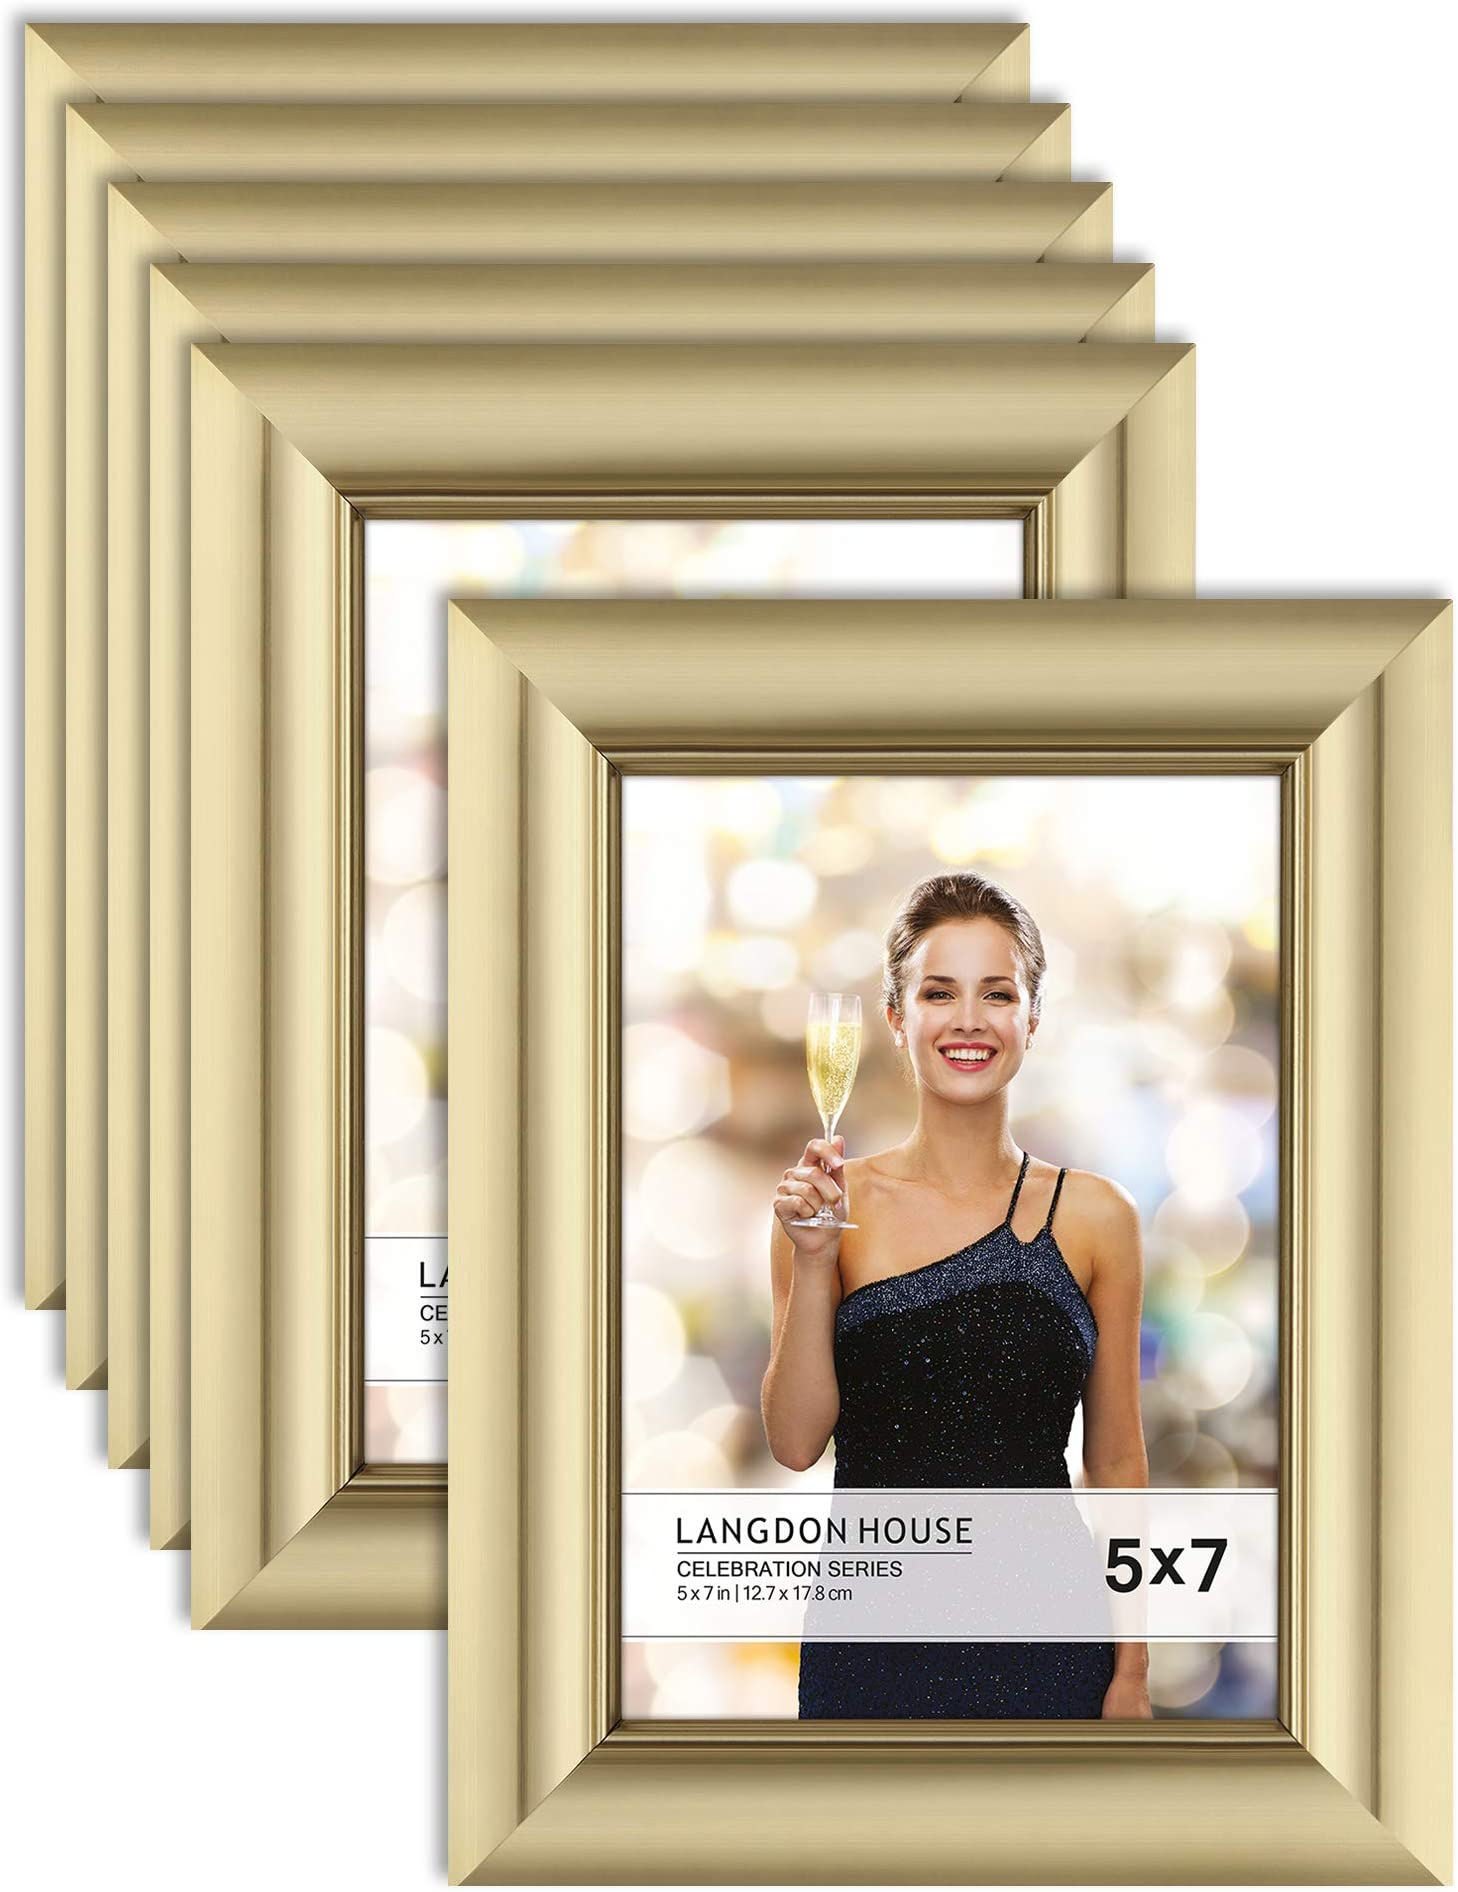 Jewelry storage; display; prop; frame; hang on the wall; gold tone frame; white shimmer fabric